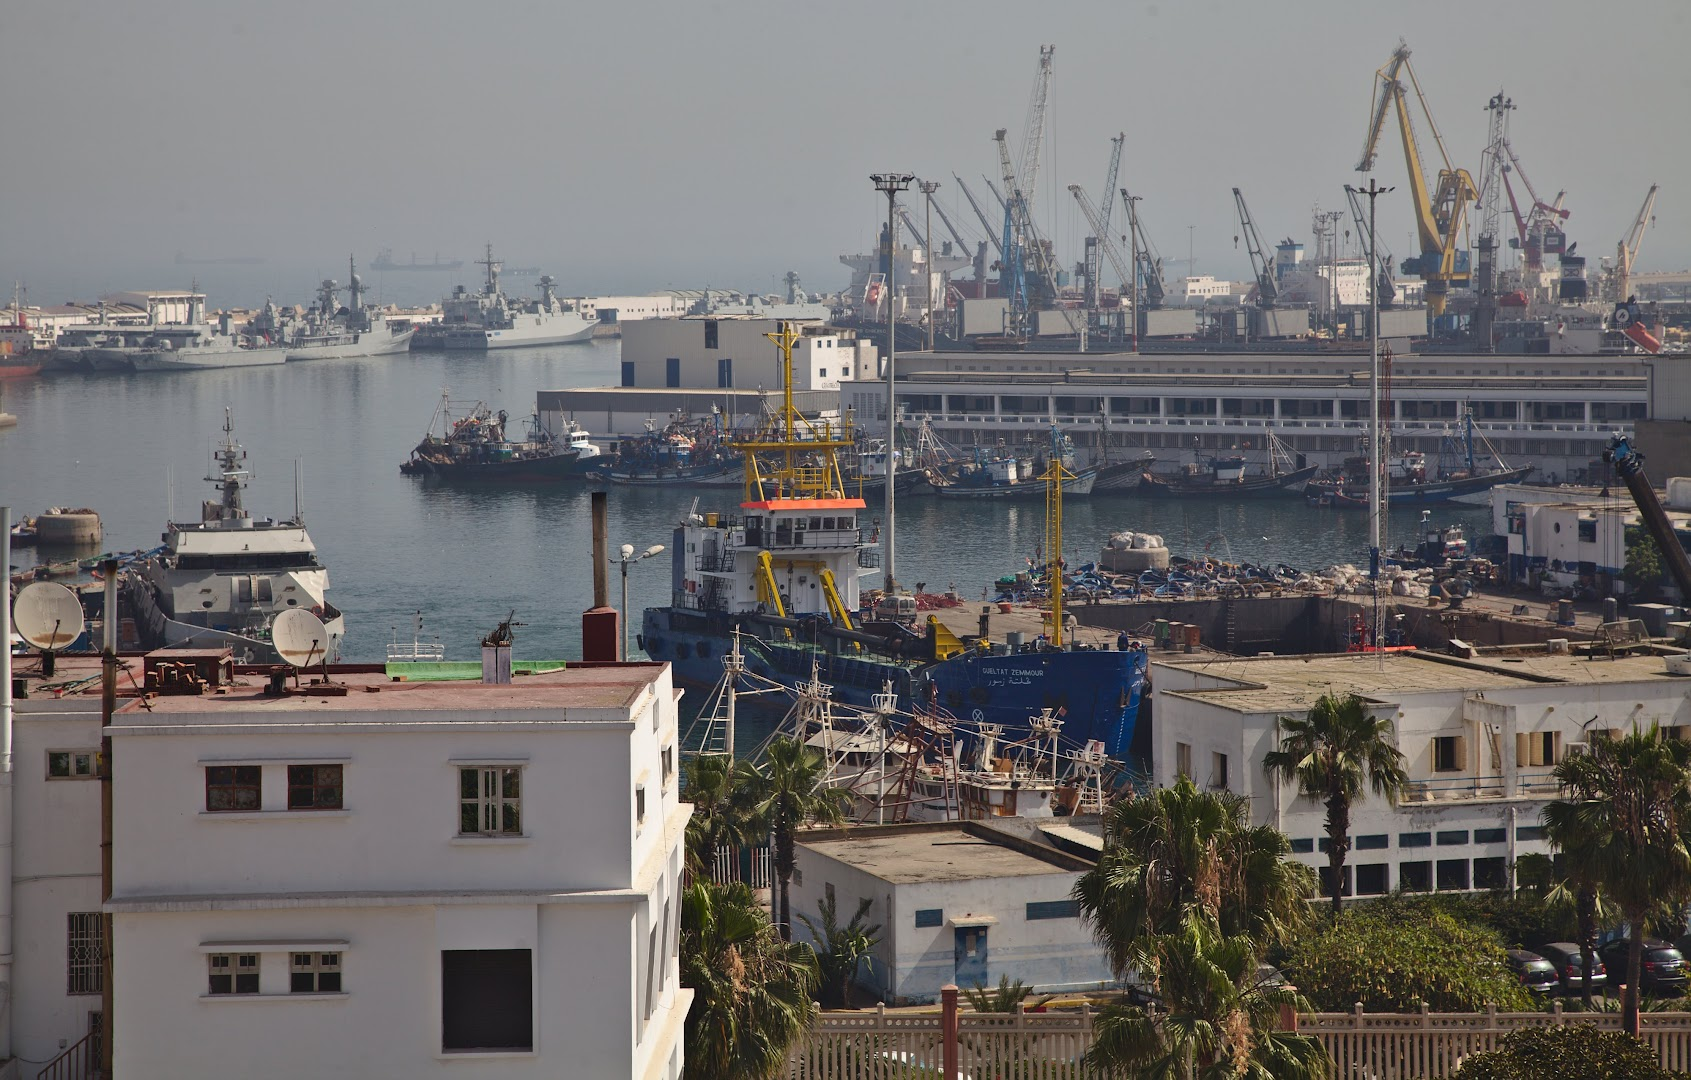 The port of Casablanca